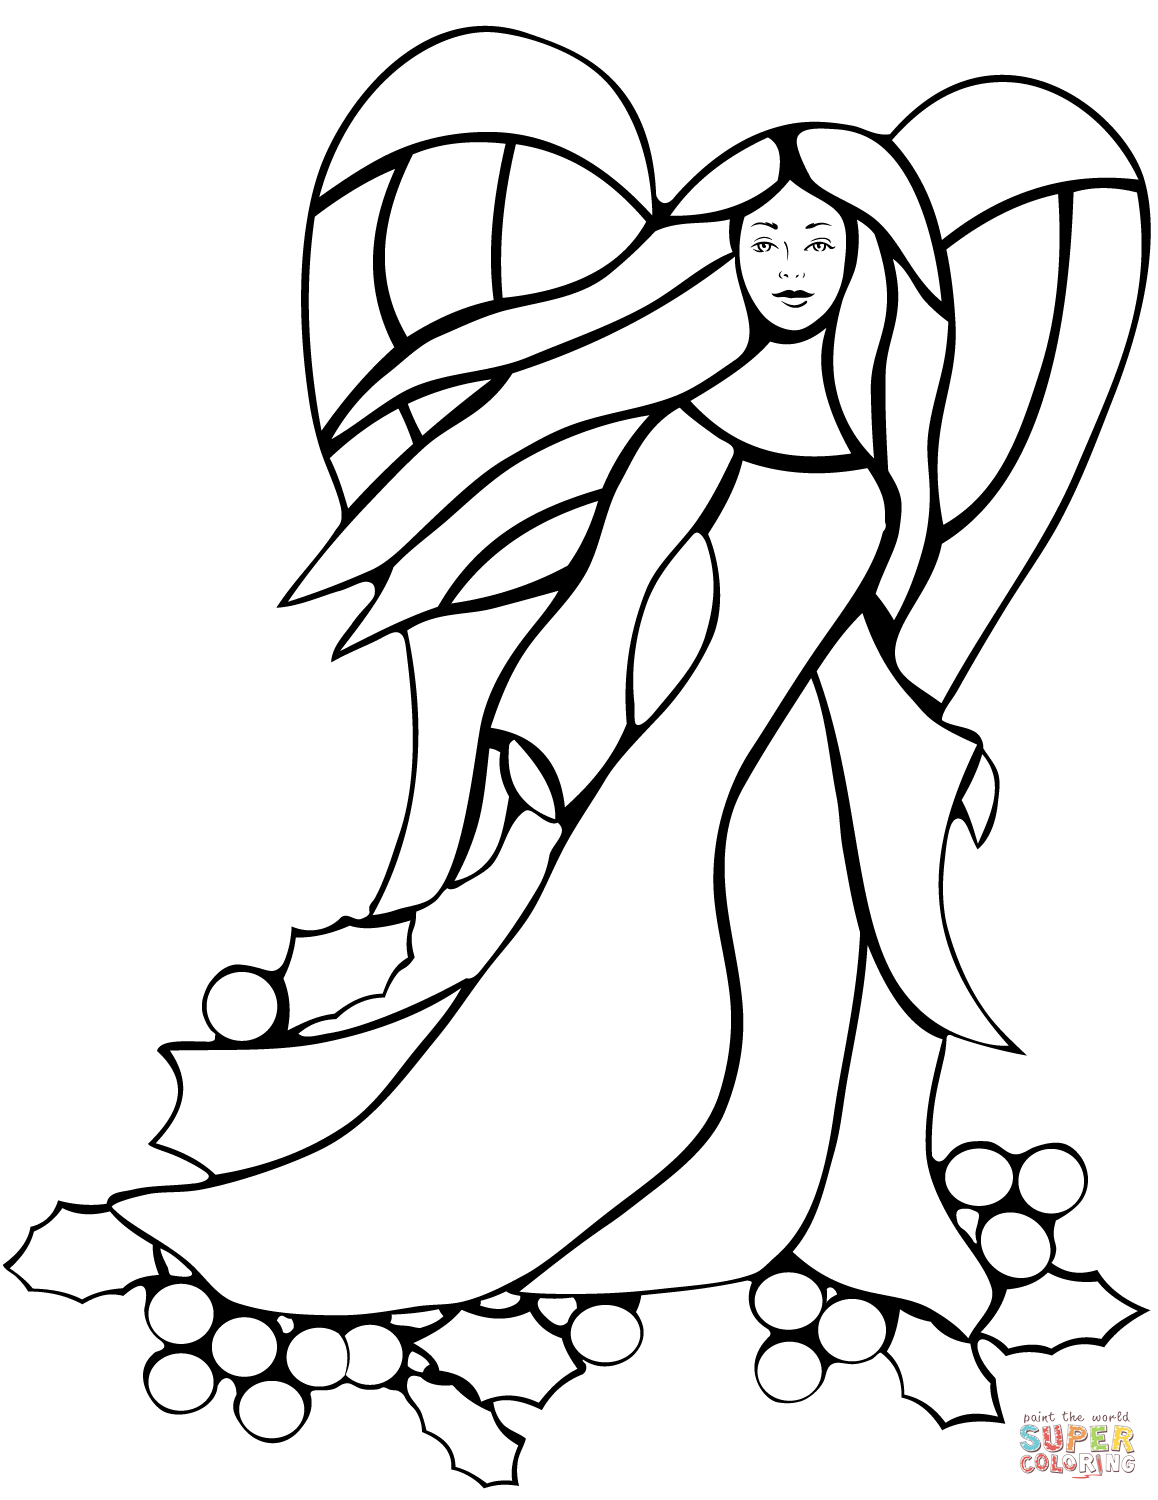 angel stained glass coloring page | free printable